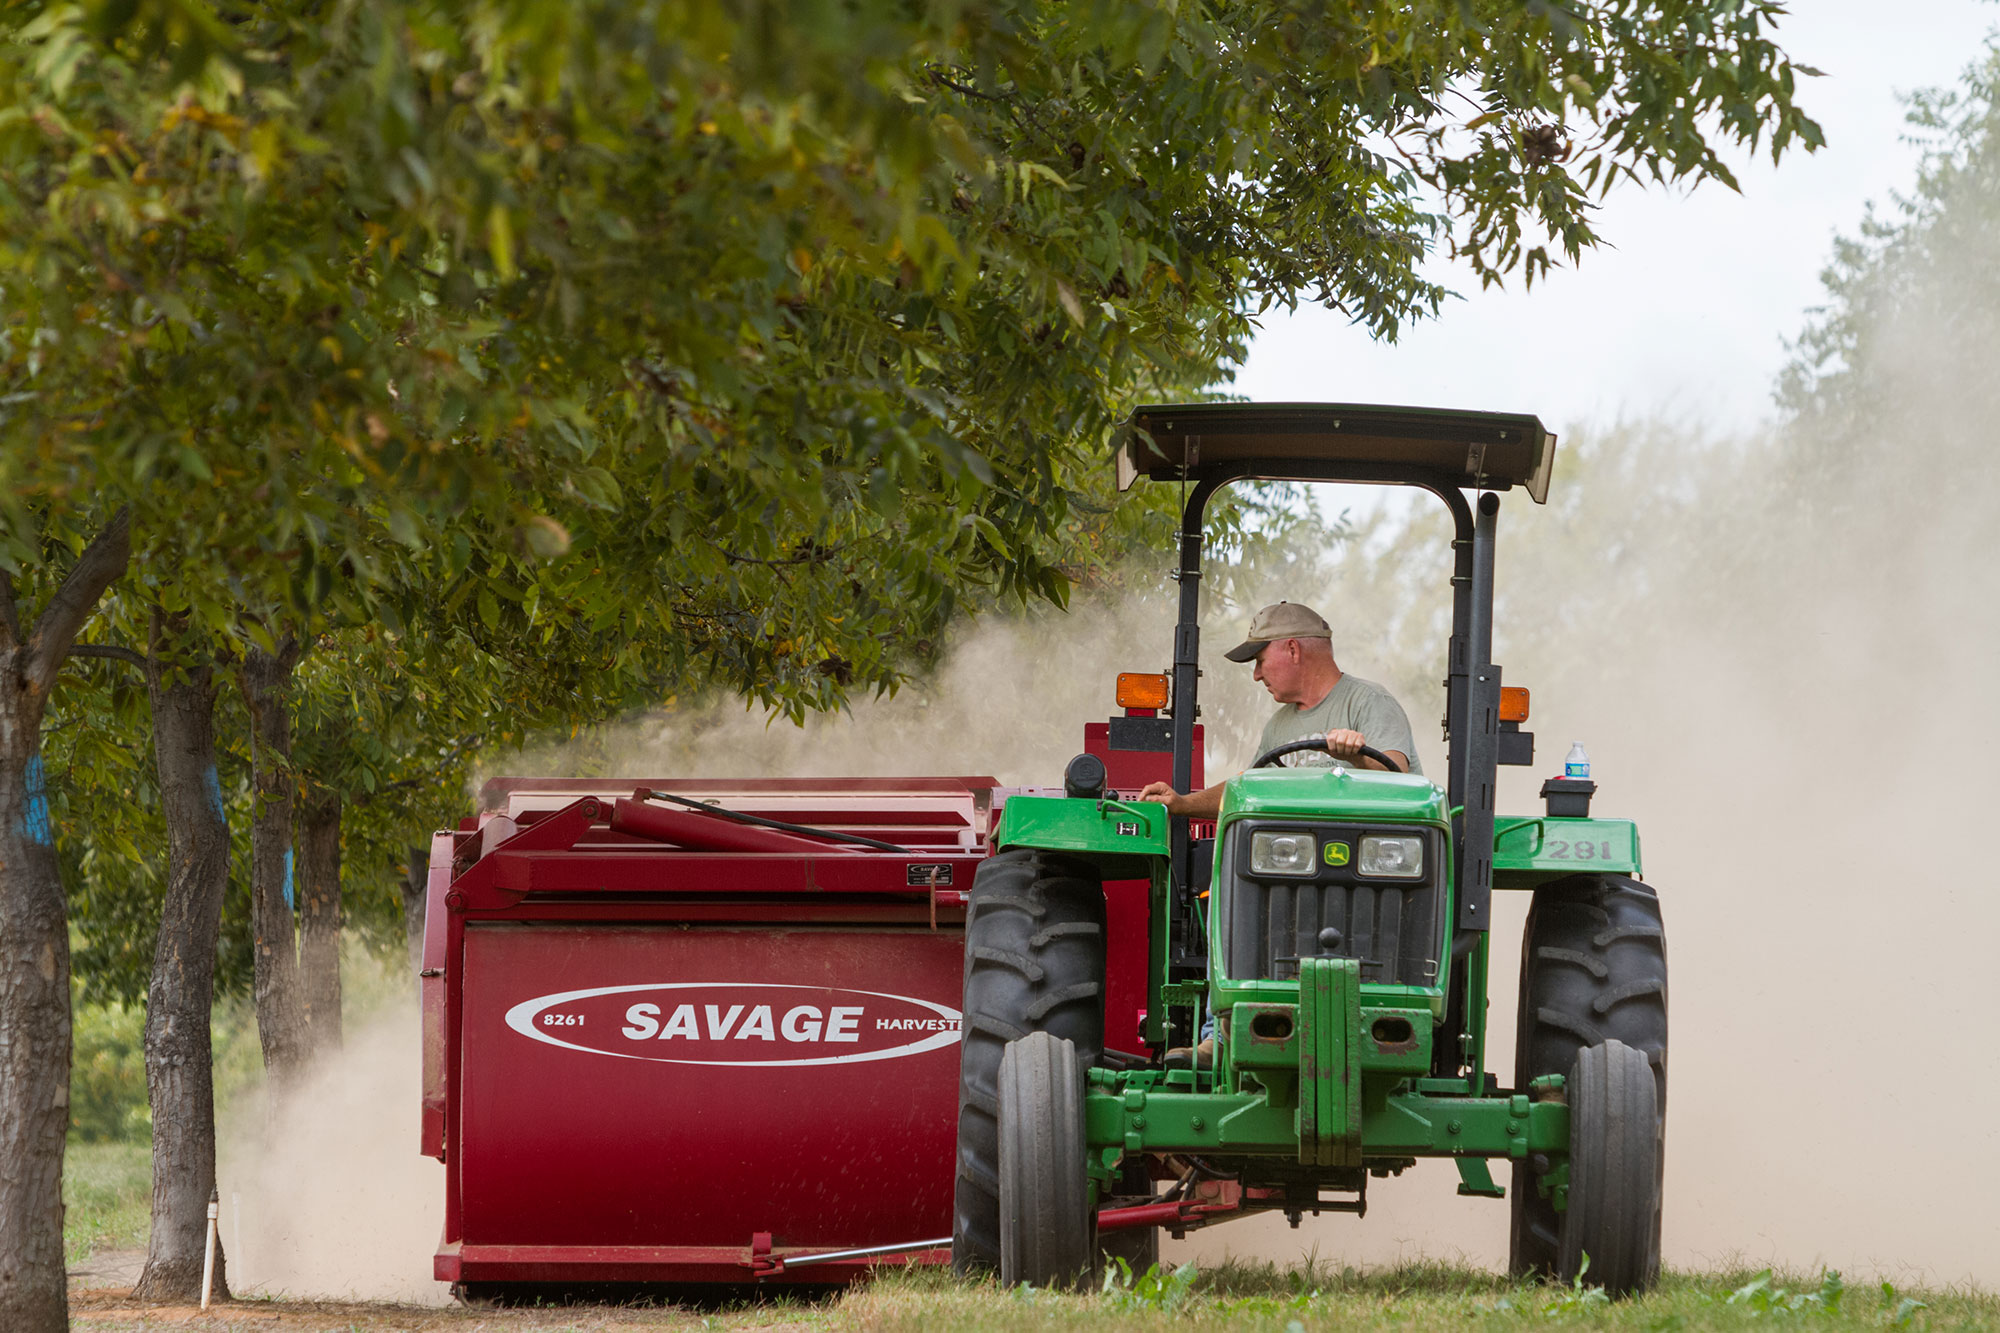 Pecan farmer working in orchard on tractor